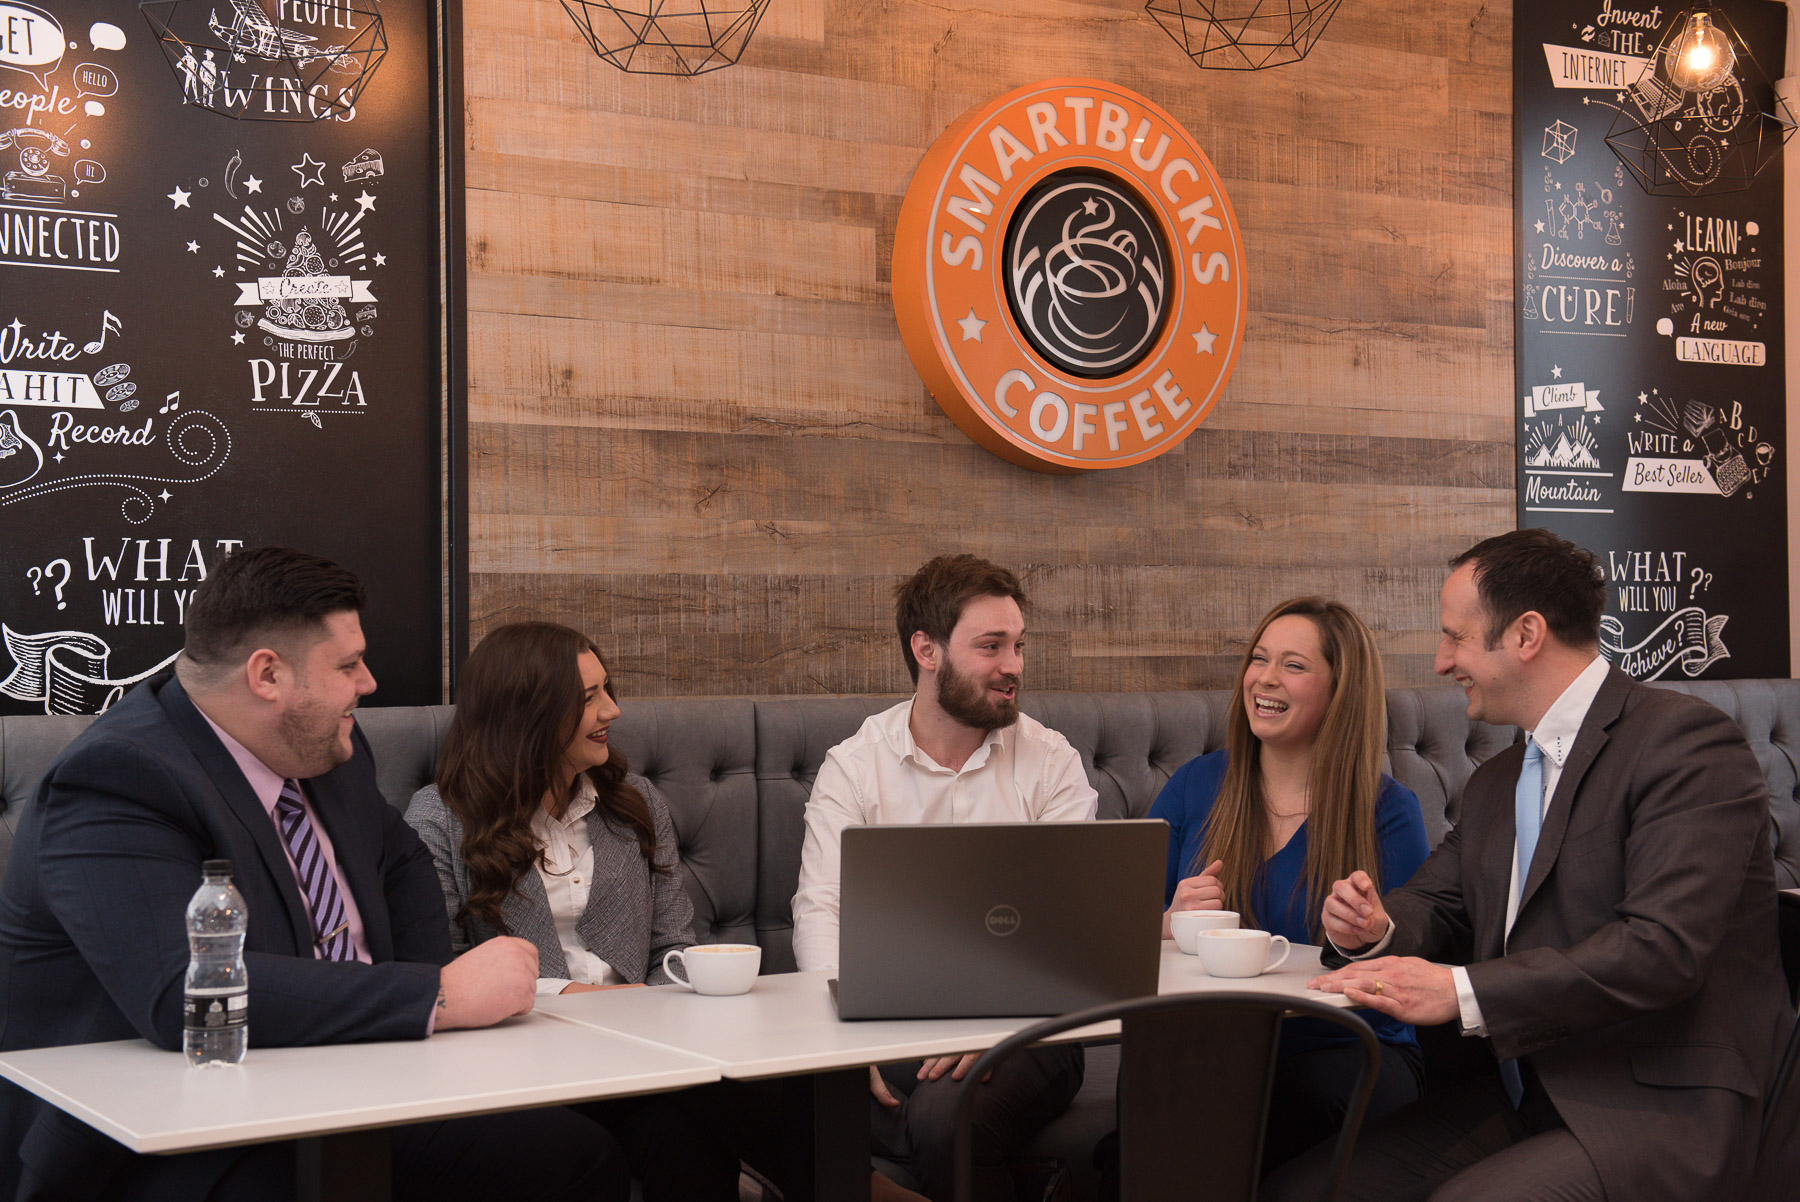 Team of young professionals laughing and interacting at an informal meeting at a coffee bar